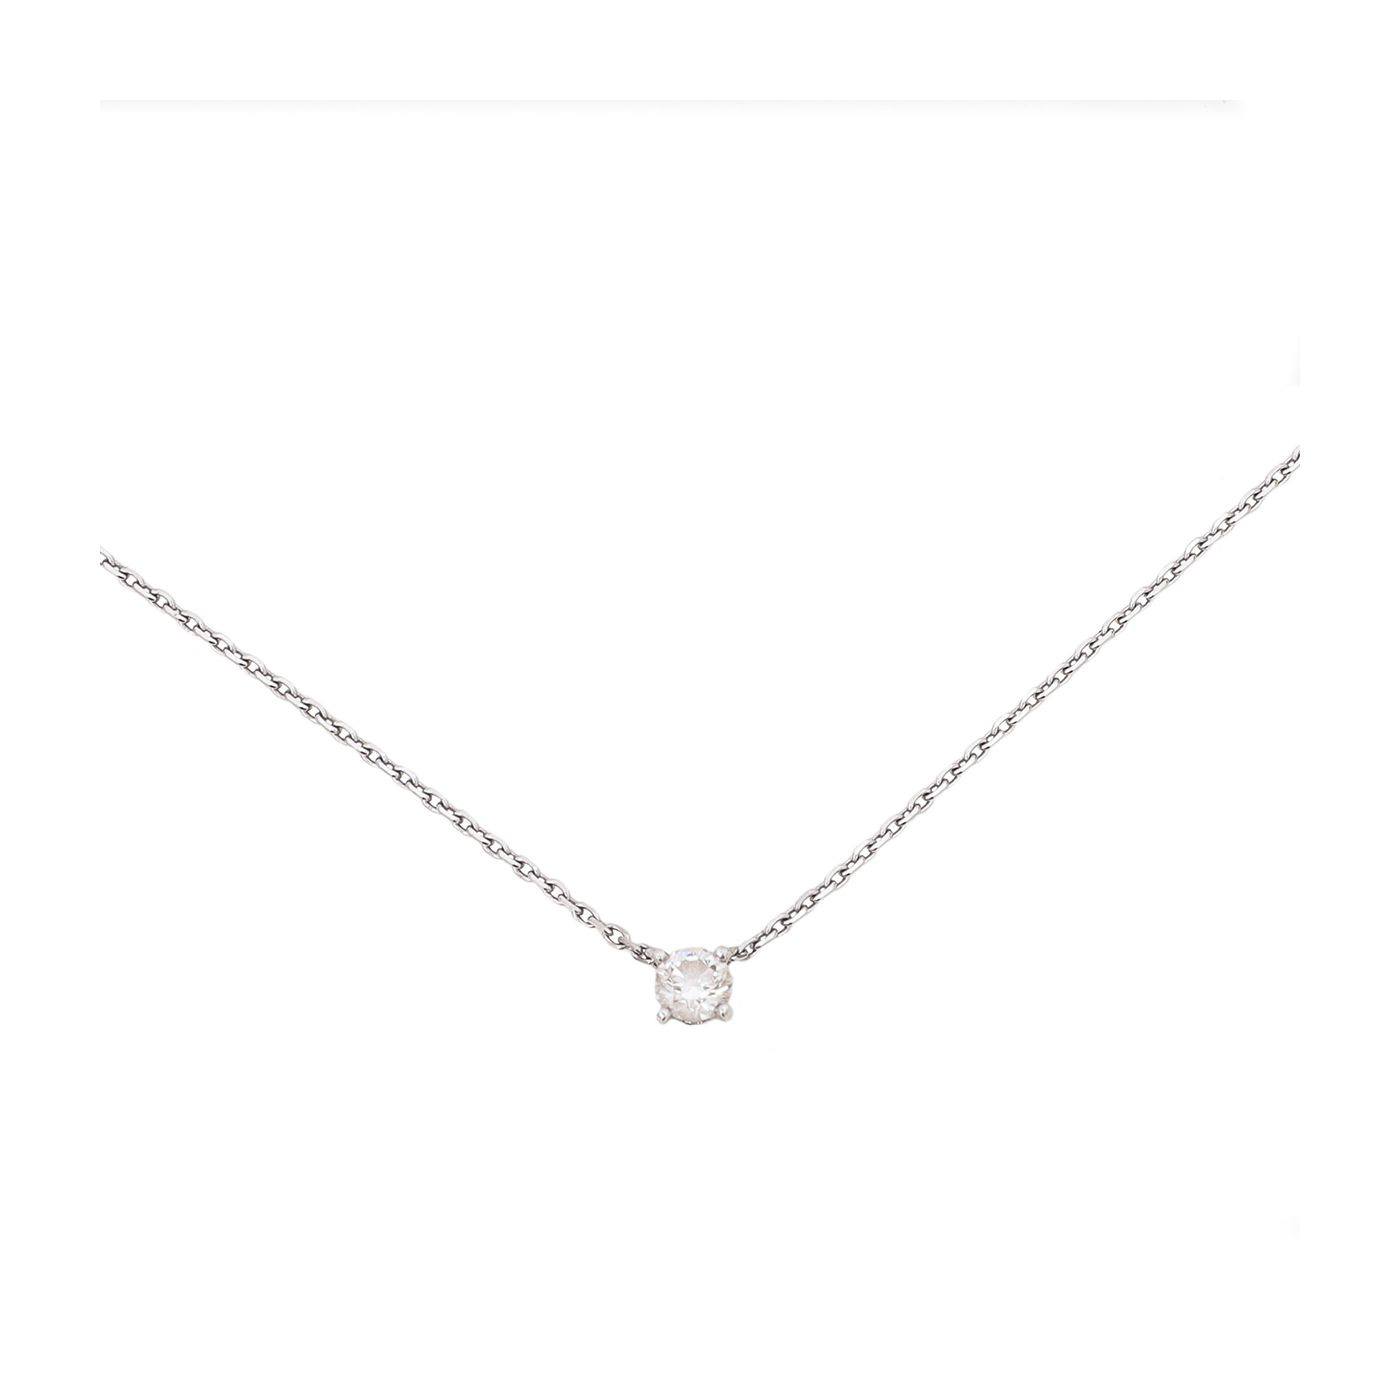 Cartier 18K White Gold 1895 Necklace w/ Diamond